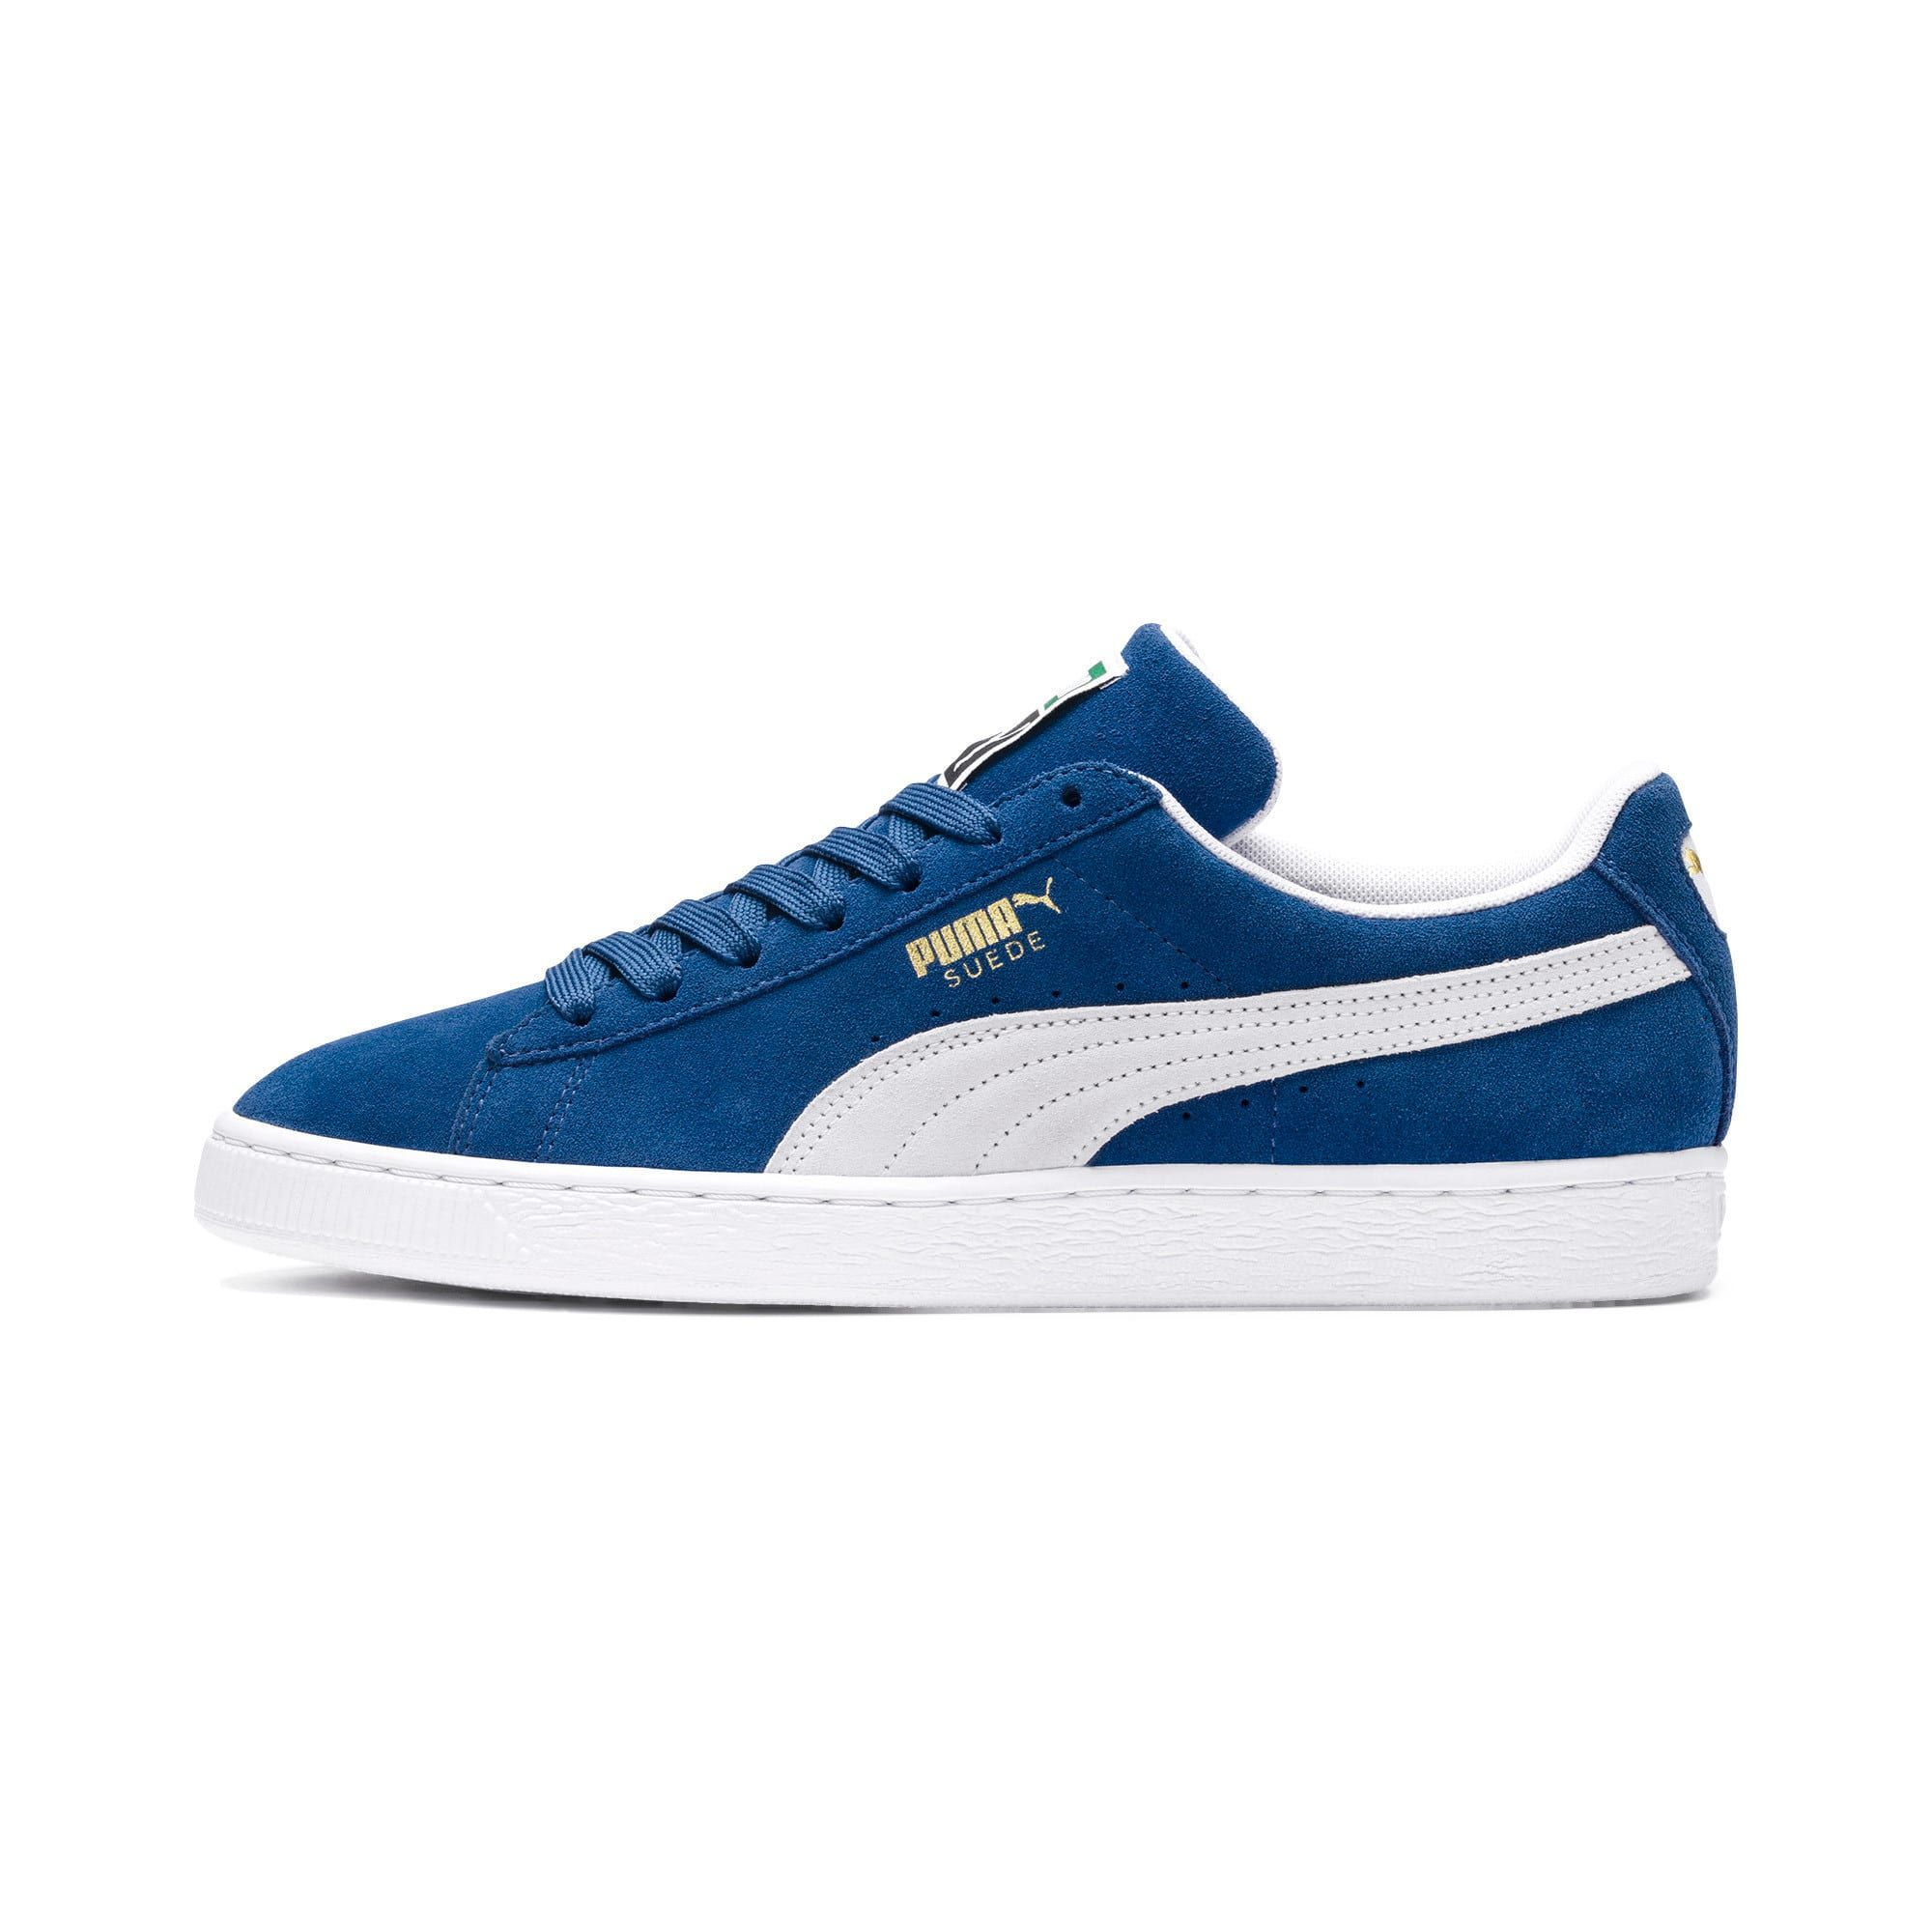 Photo of Men's PUMA Suede Classic+ Trainers, Olympian Blue/White, size 9.5, Shoes